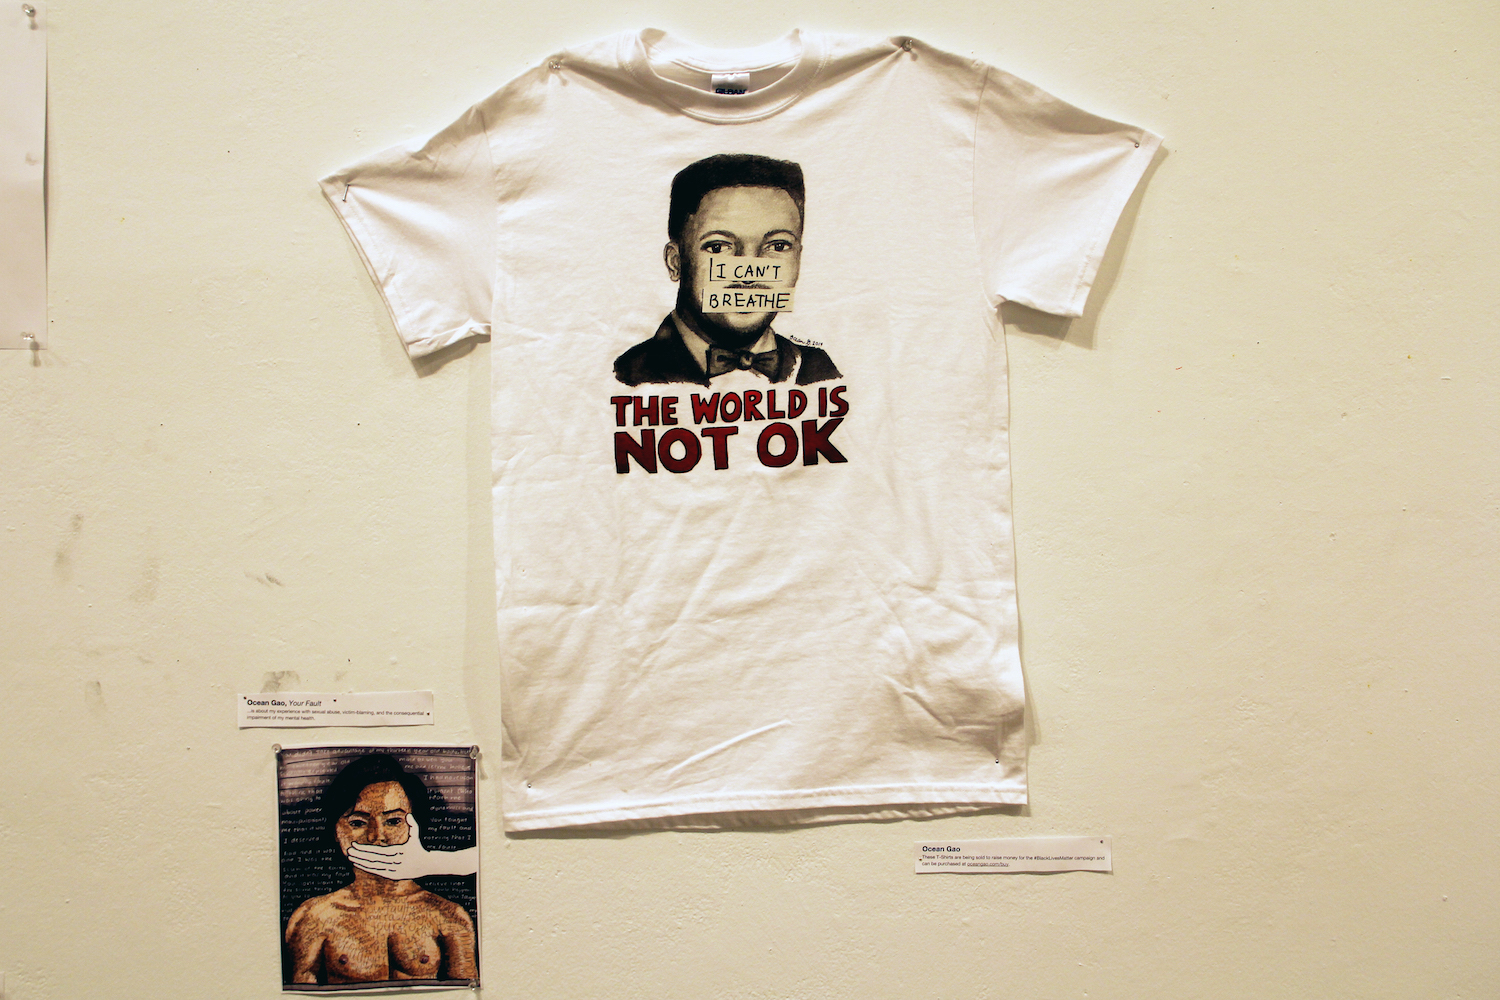 Ocean Gao '19 exhibited their political voice through the platform of art, including a t-shirt they designed to raise money for the #BlackLivesMatter campaign.